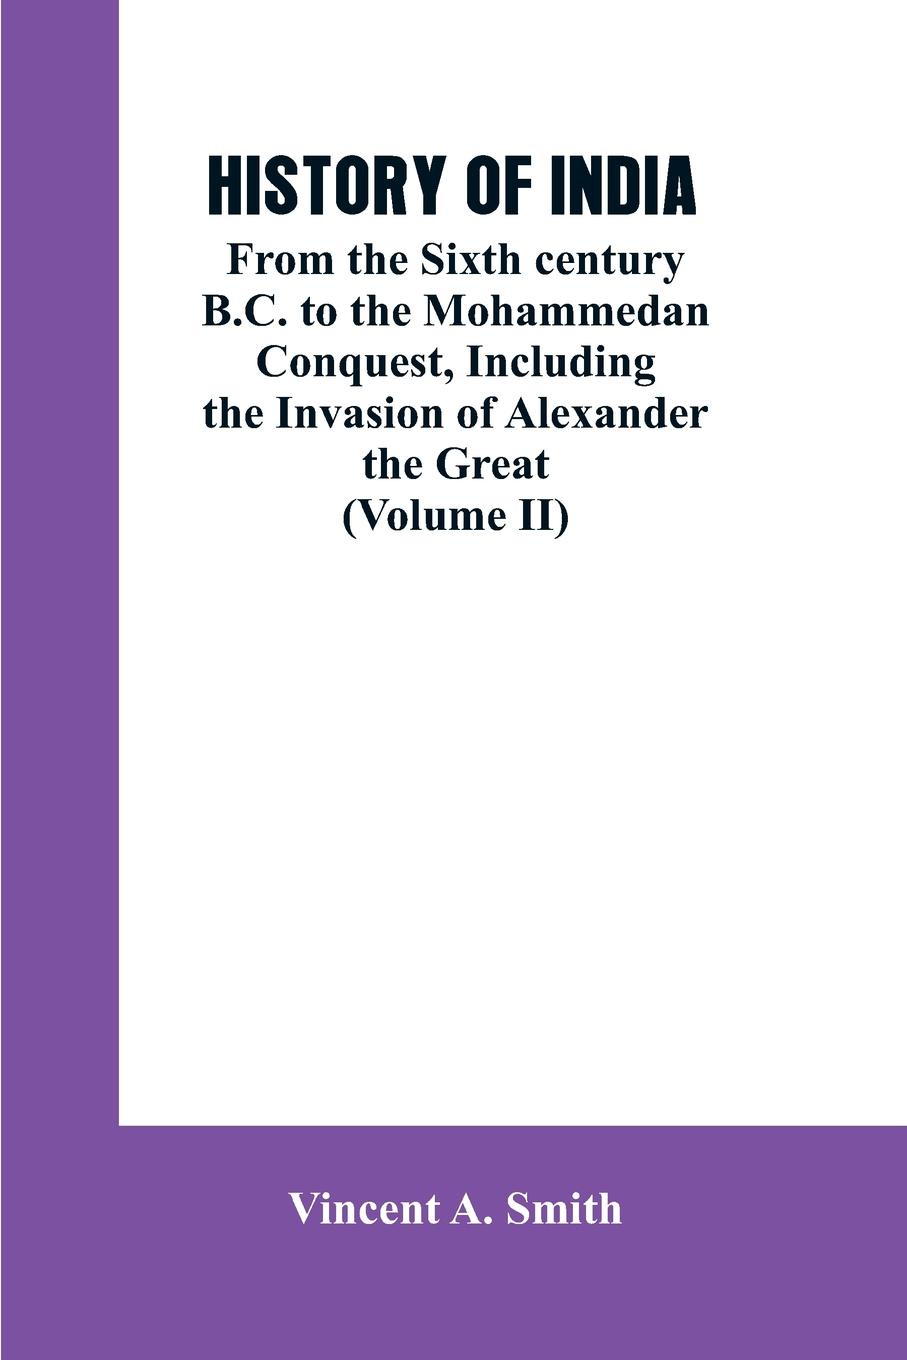 где купить Vincent A. Smith HISTORY OF INDIA. From the Sixth century B.C. to the mohammedon conquest, including the invasion of Alexander the great (Volume II) недорого с доставкой